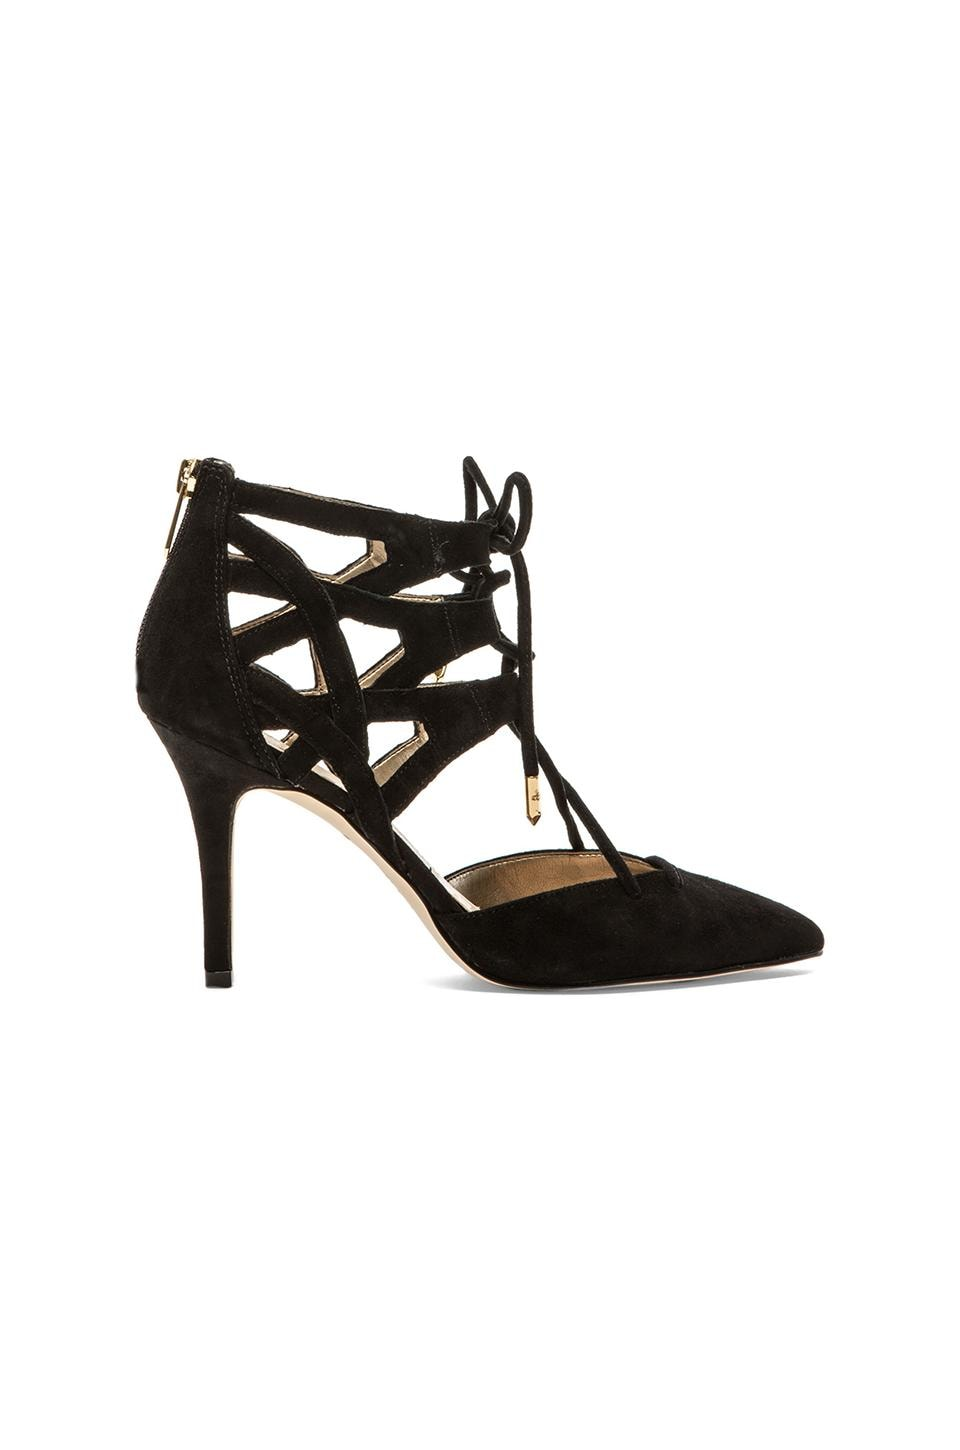 Sam Edelman Zavier Heel in Black